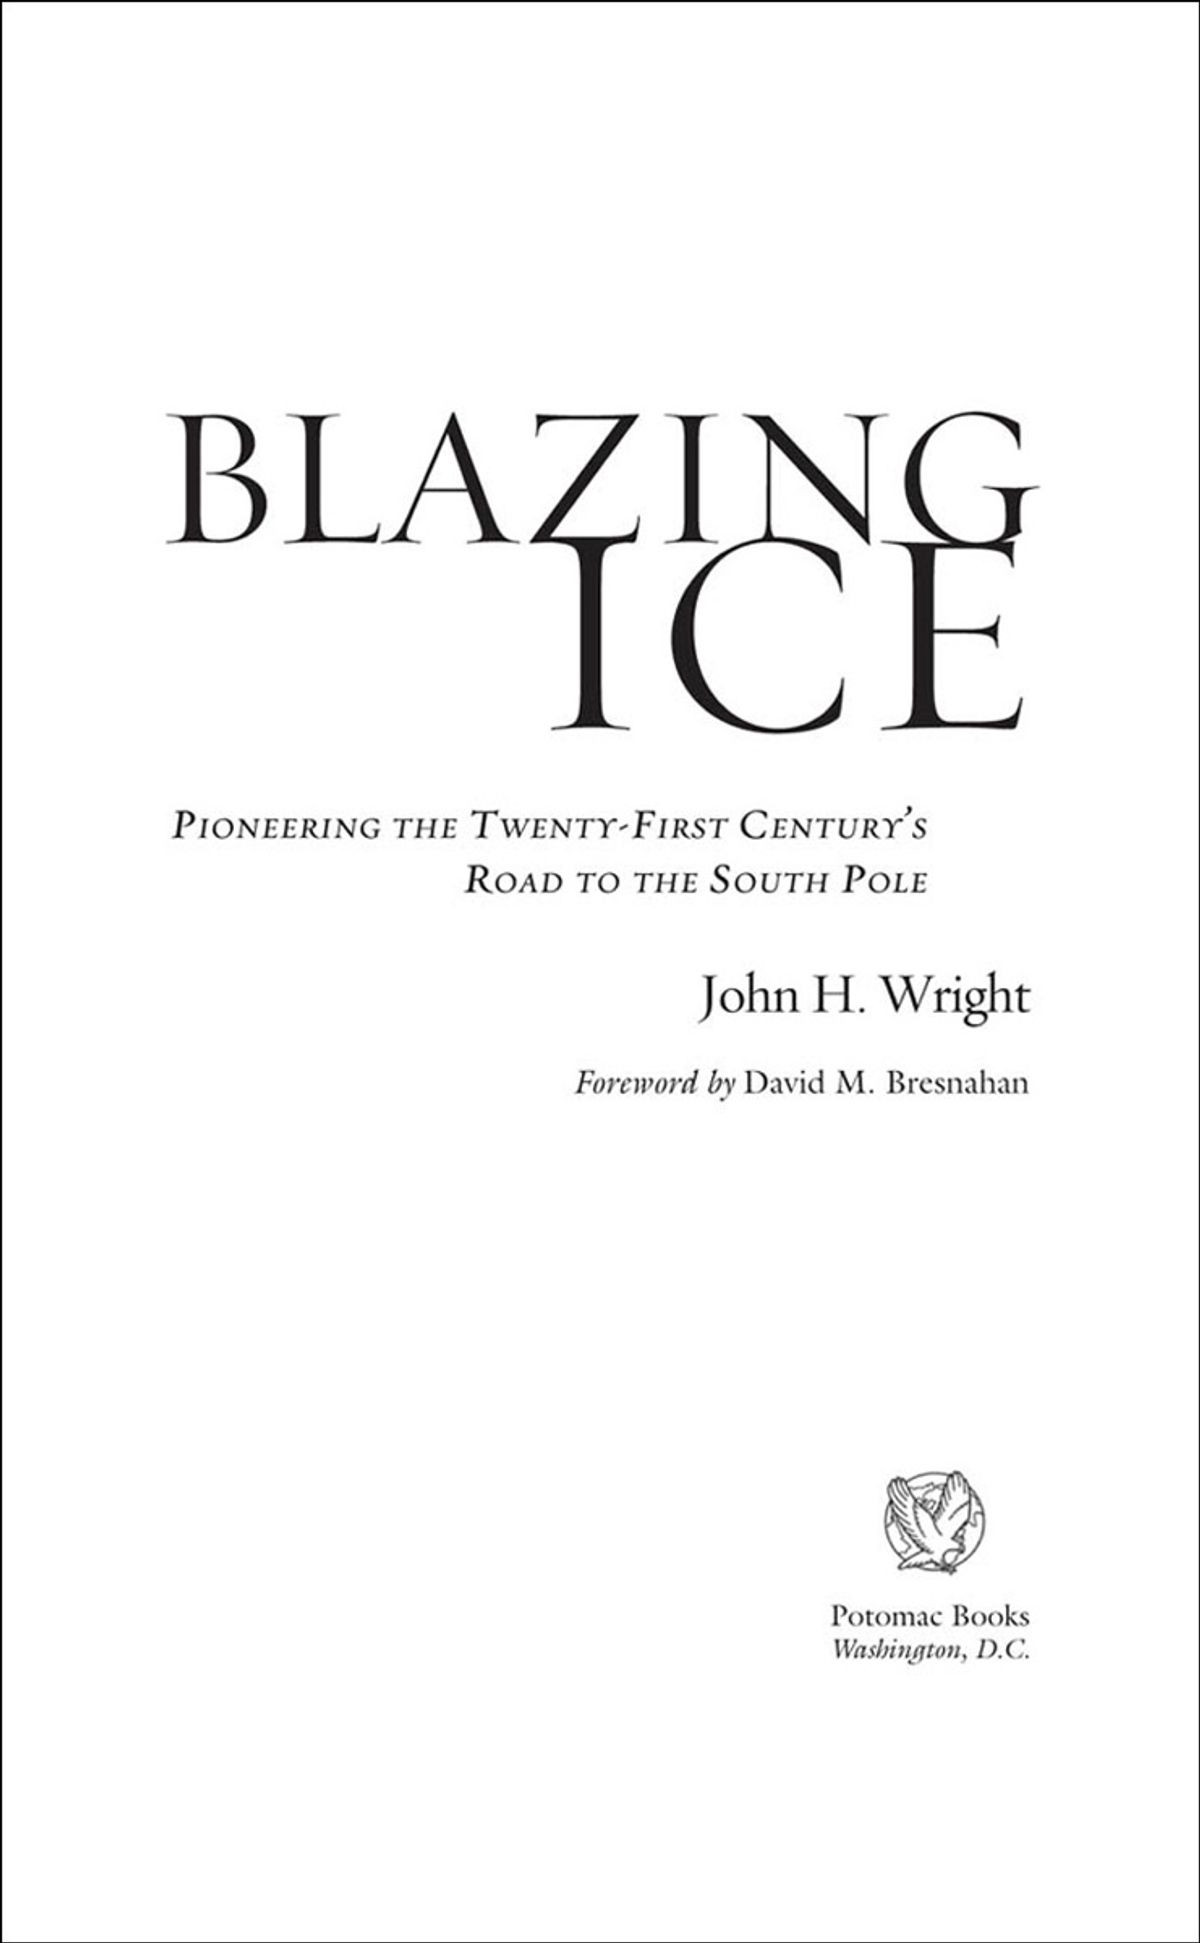 Blazing Ice: Pioneering the Twenty-first CenturyÆs Road to